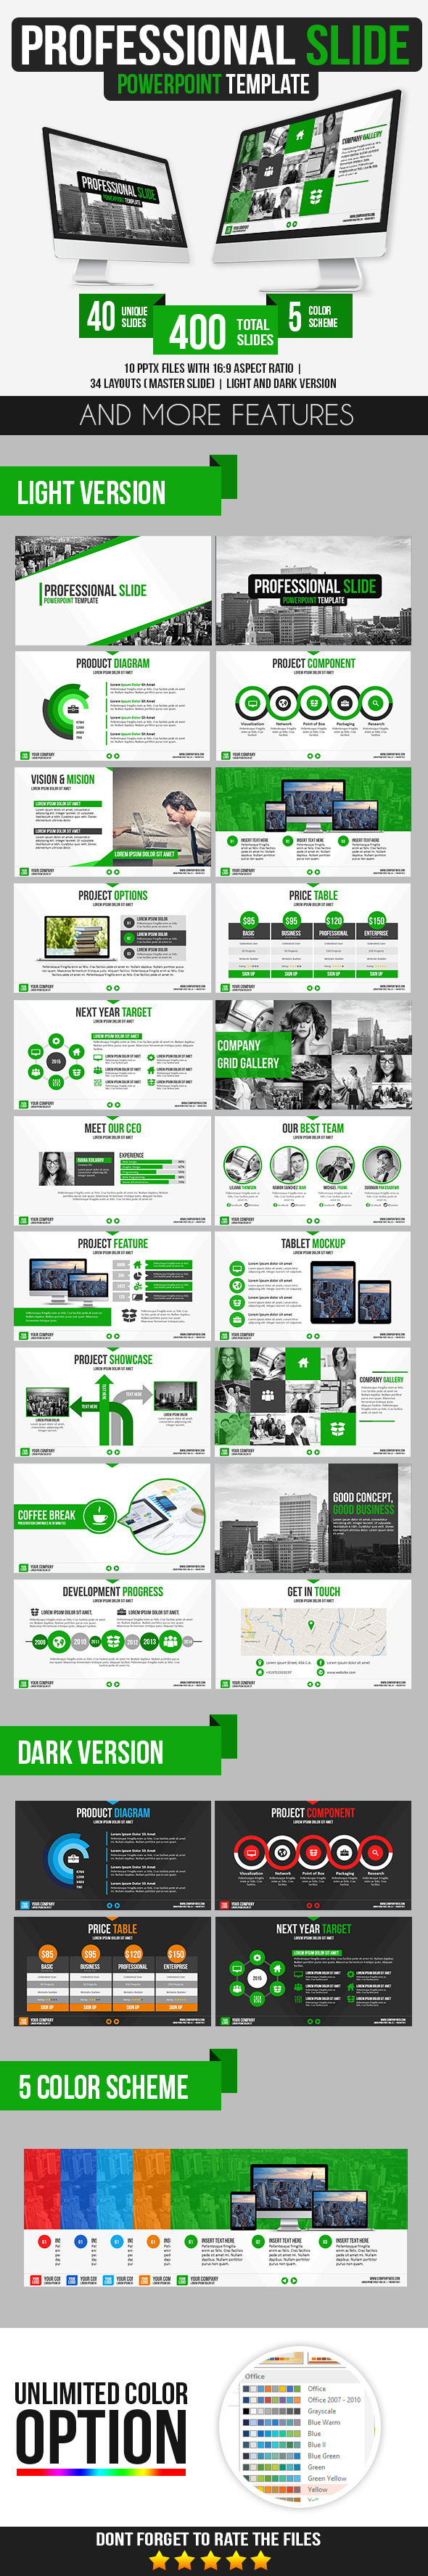 GraphicRiver Professional Slide PowerPoint Template 9911210